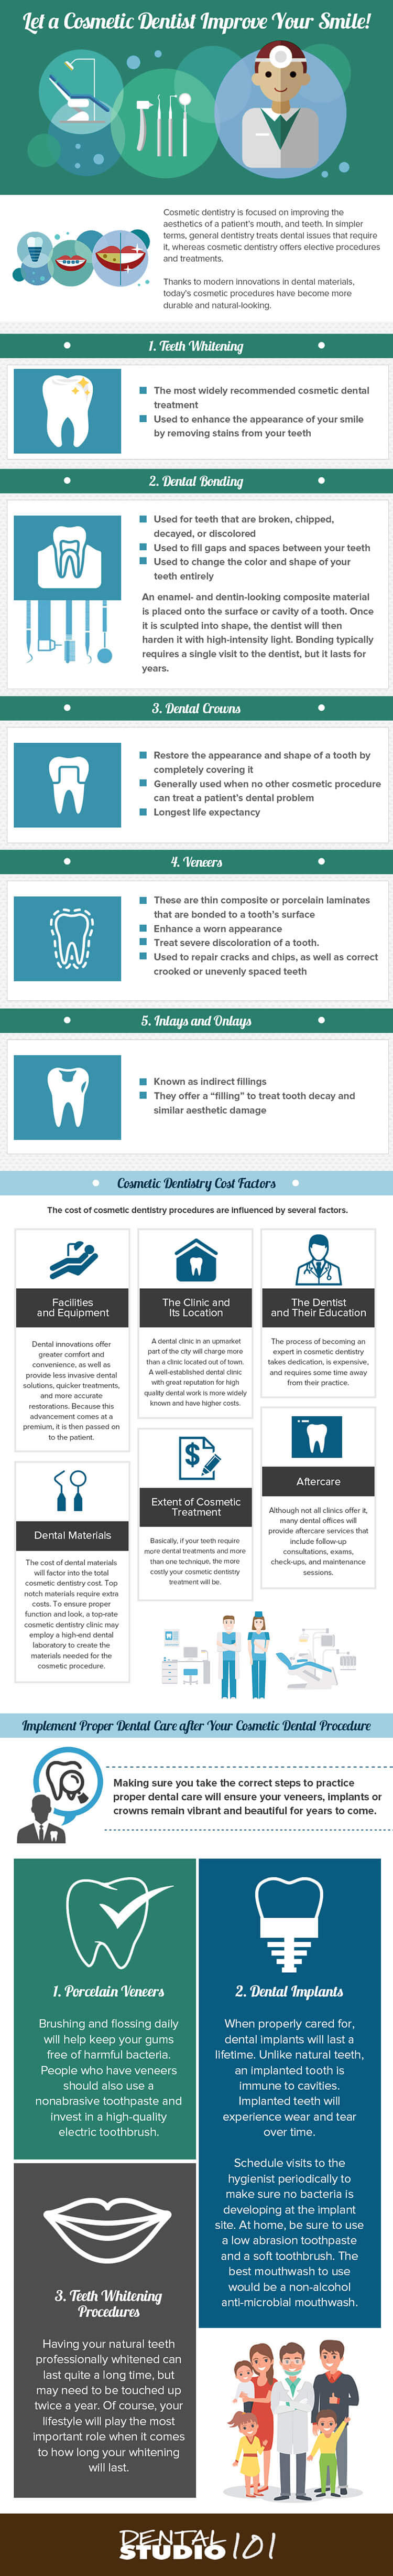 cosmetic dentistry infographic - Dental Studio 101